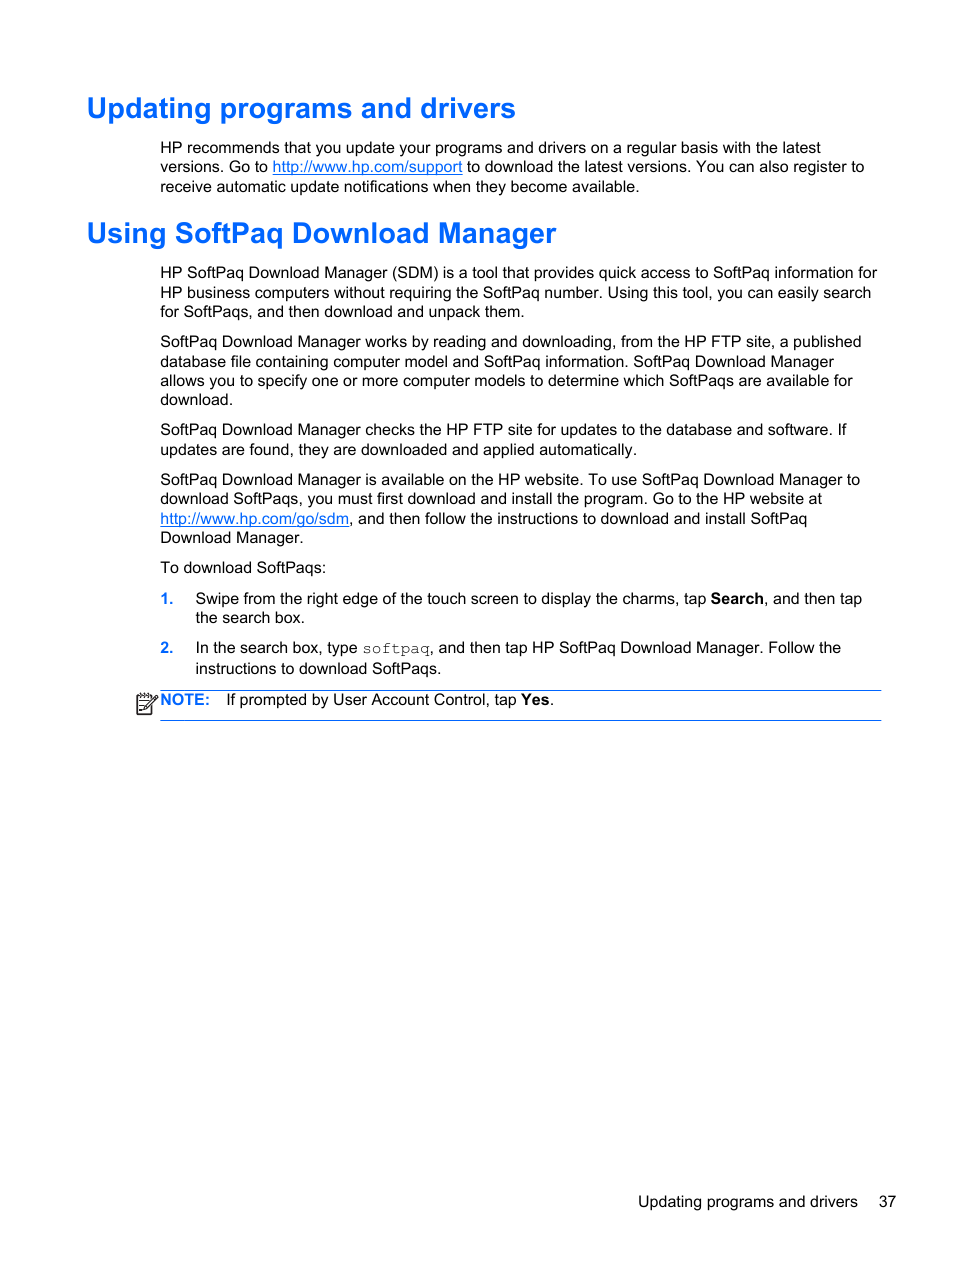 Updating programs and drivers, Using softpaq download manager | HP